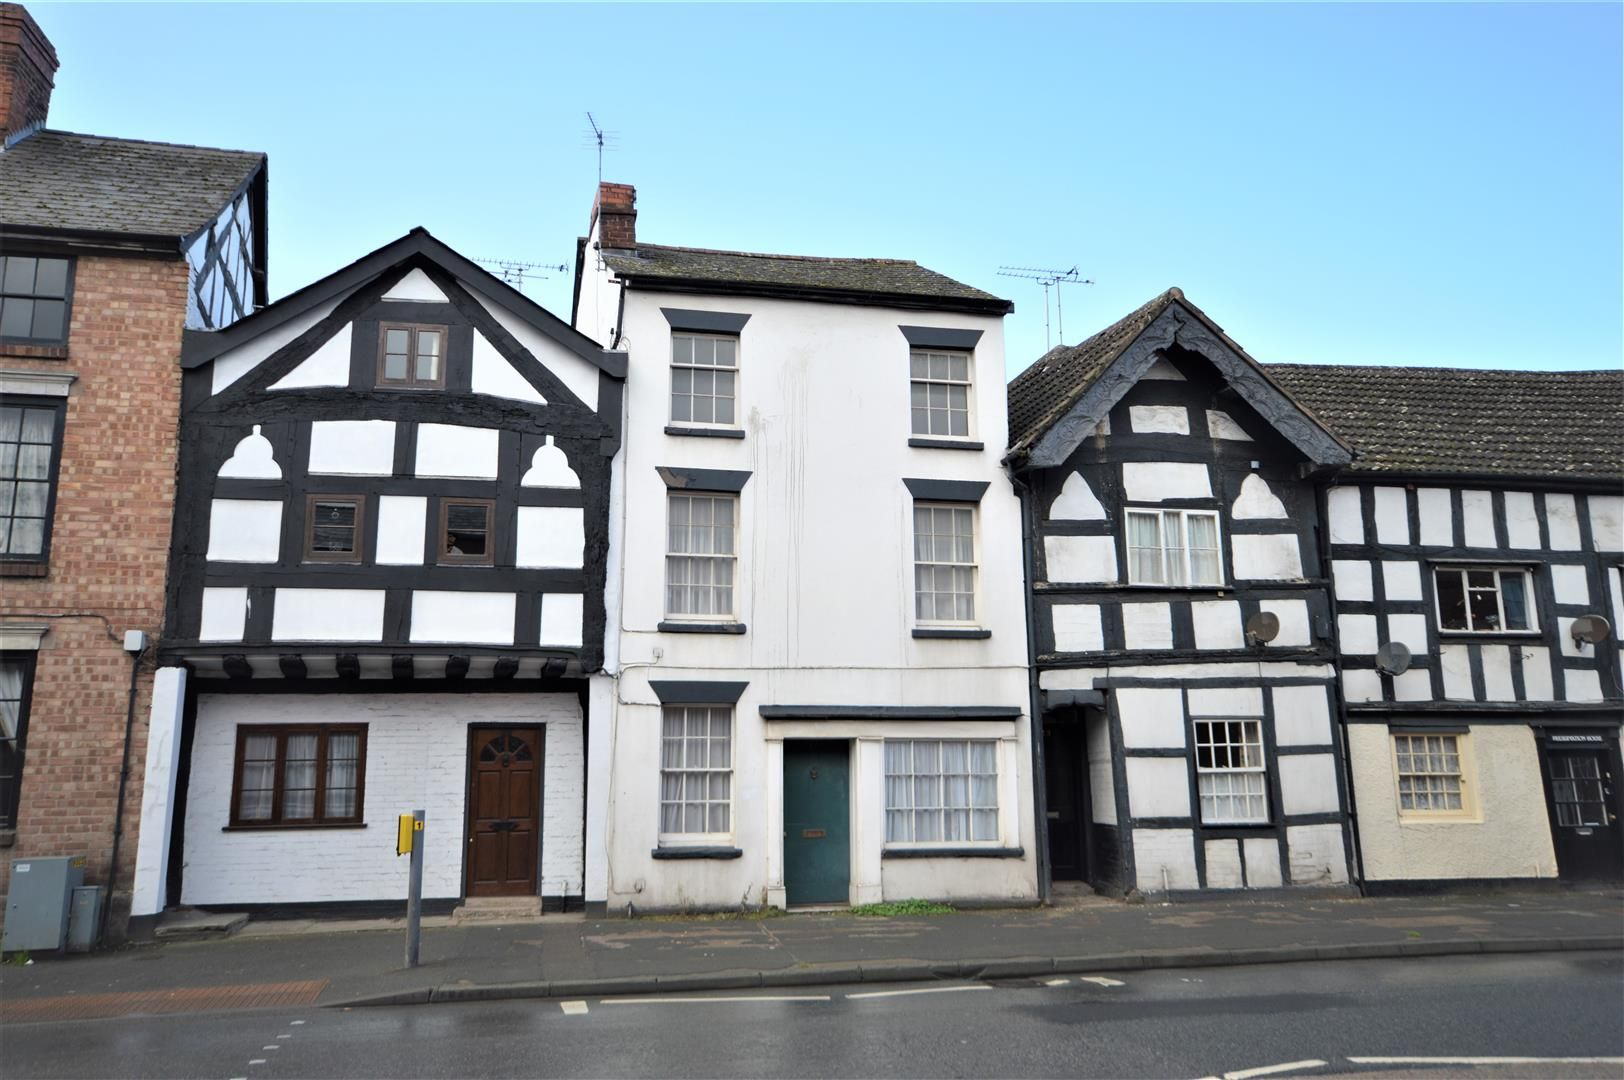 4 bed terraced for sale in Leominster 1